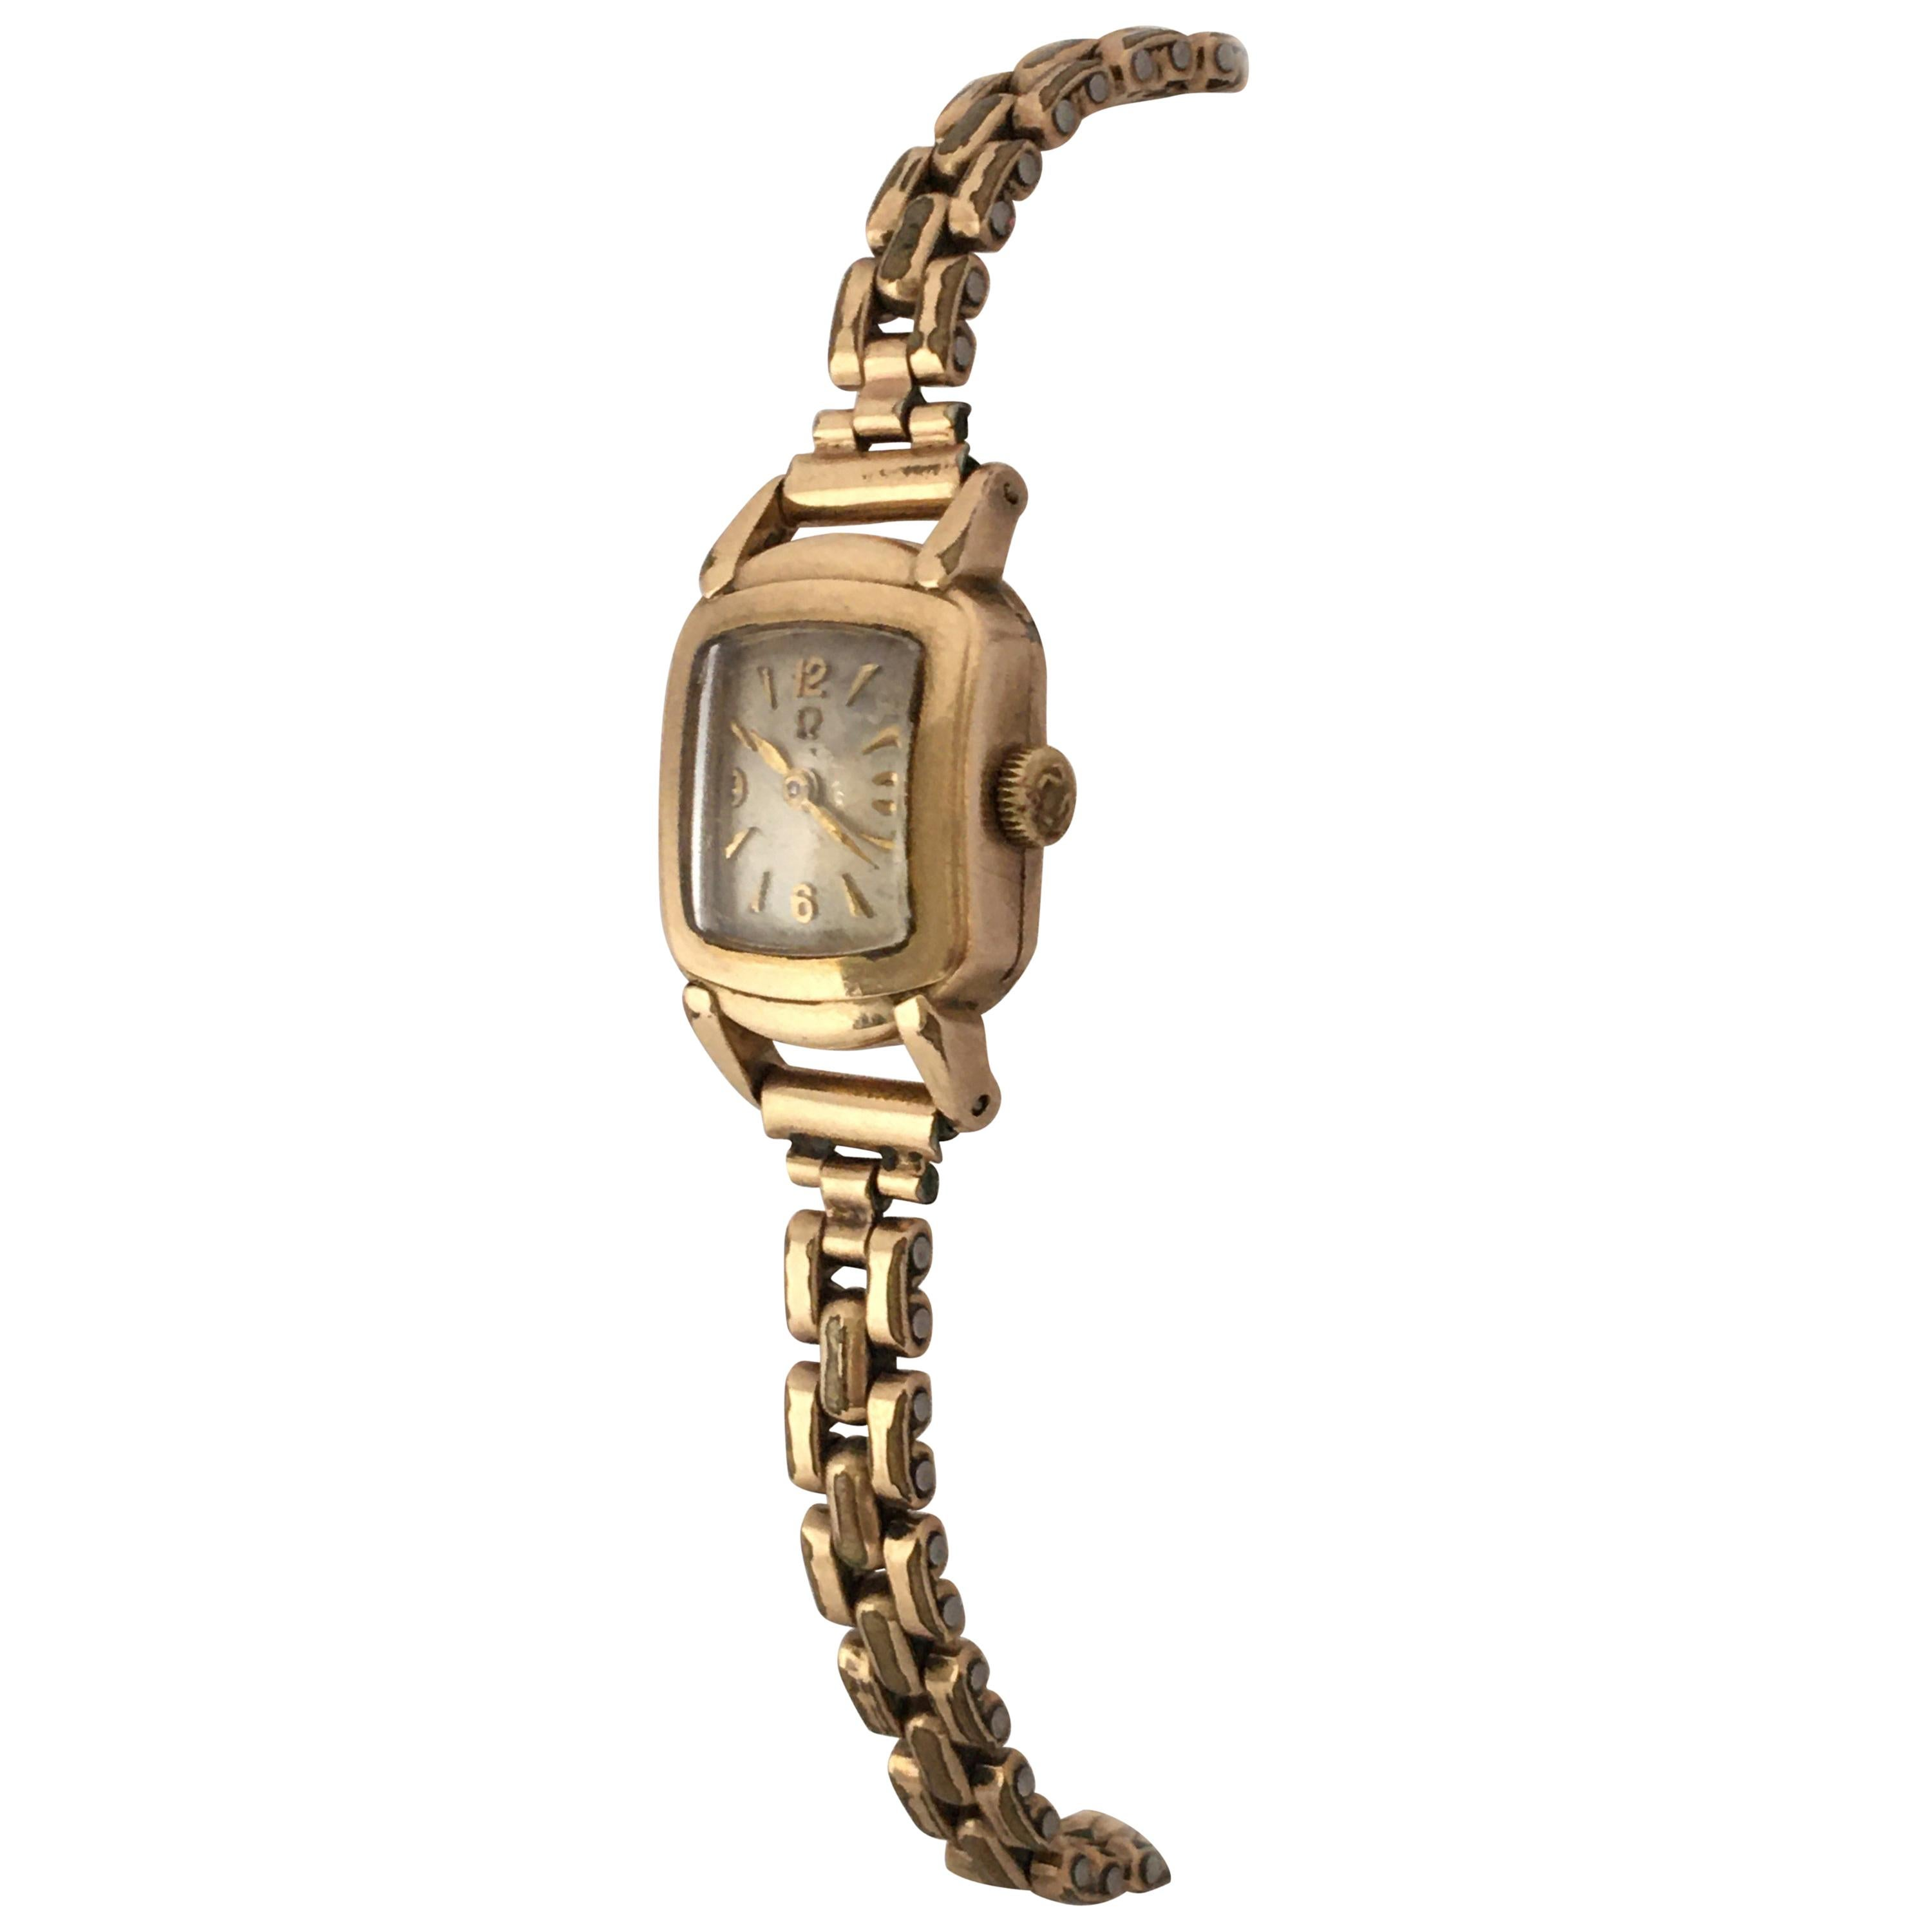 Ladies Omega Vintage Gold-Plated Mechanical Watch